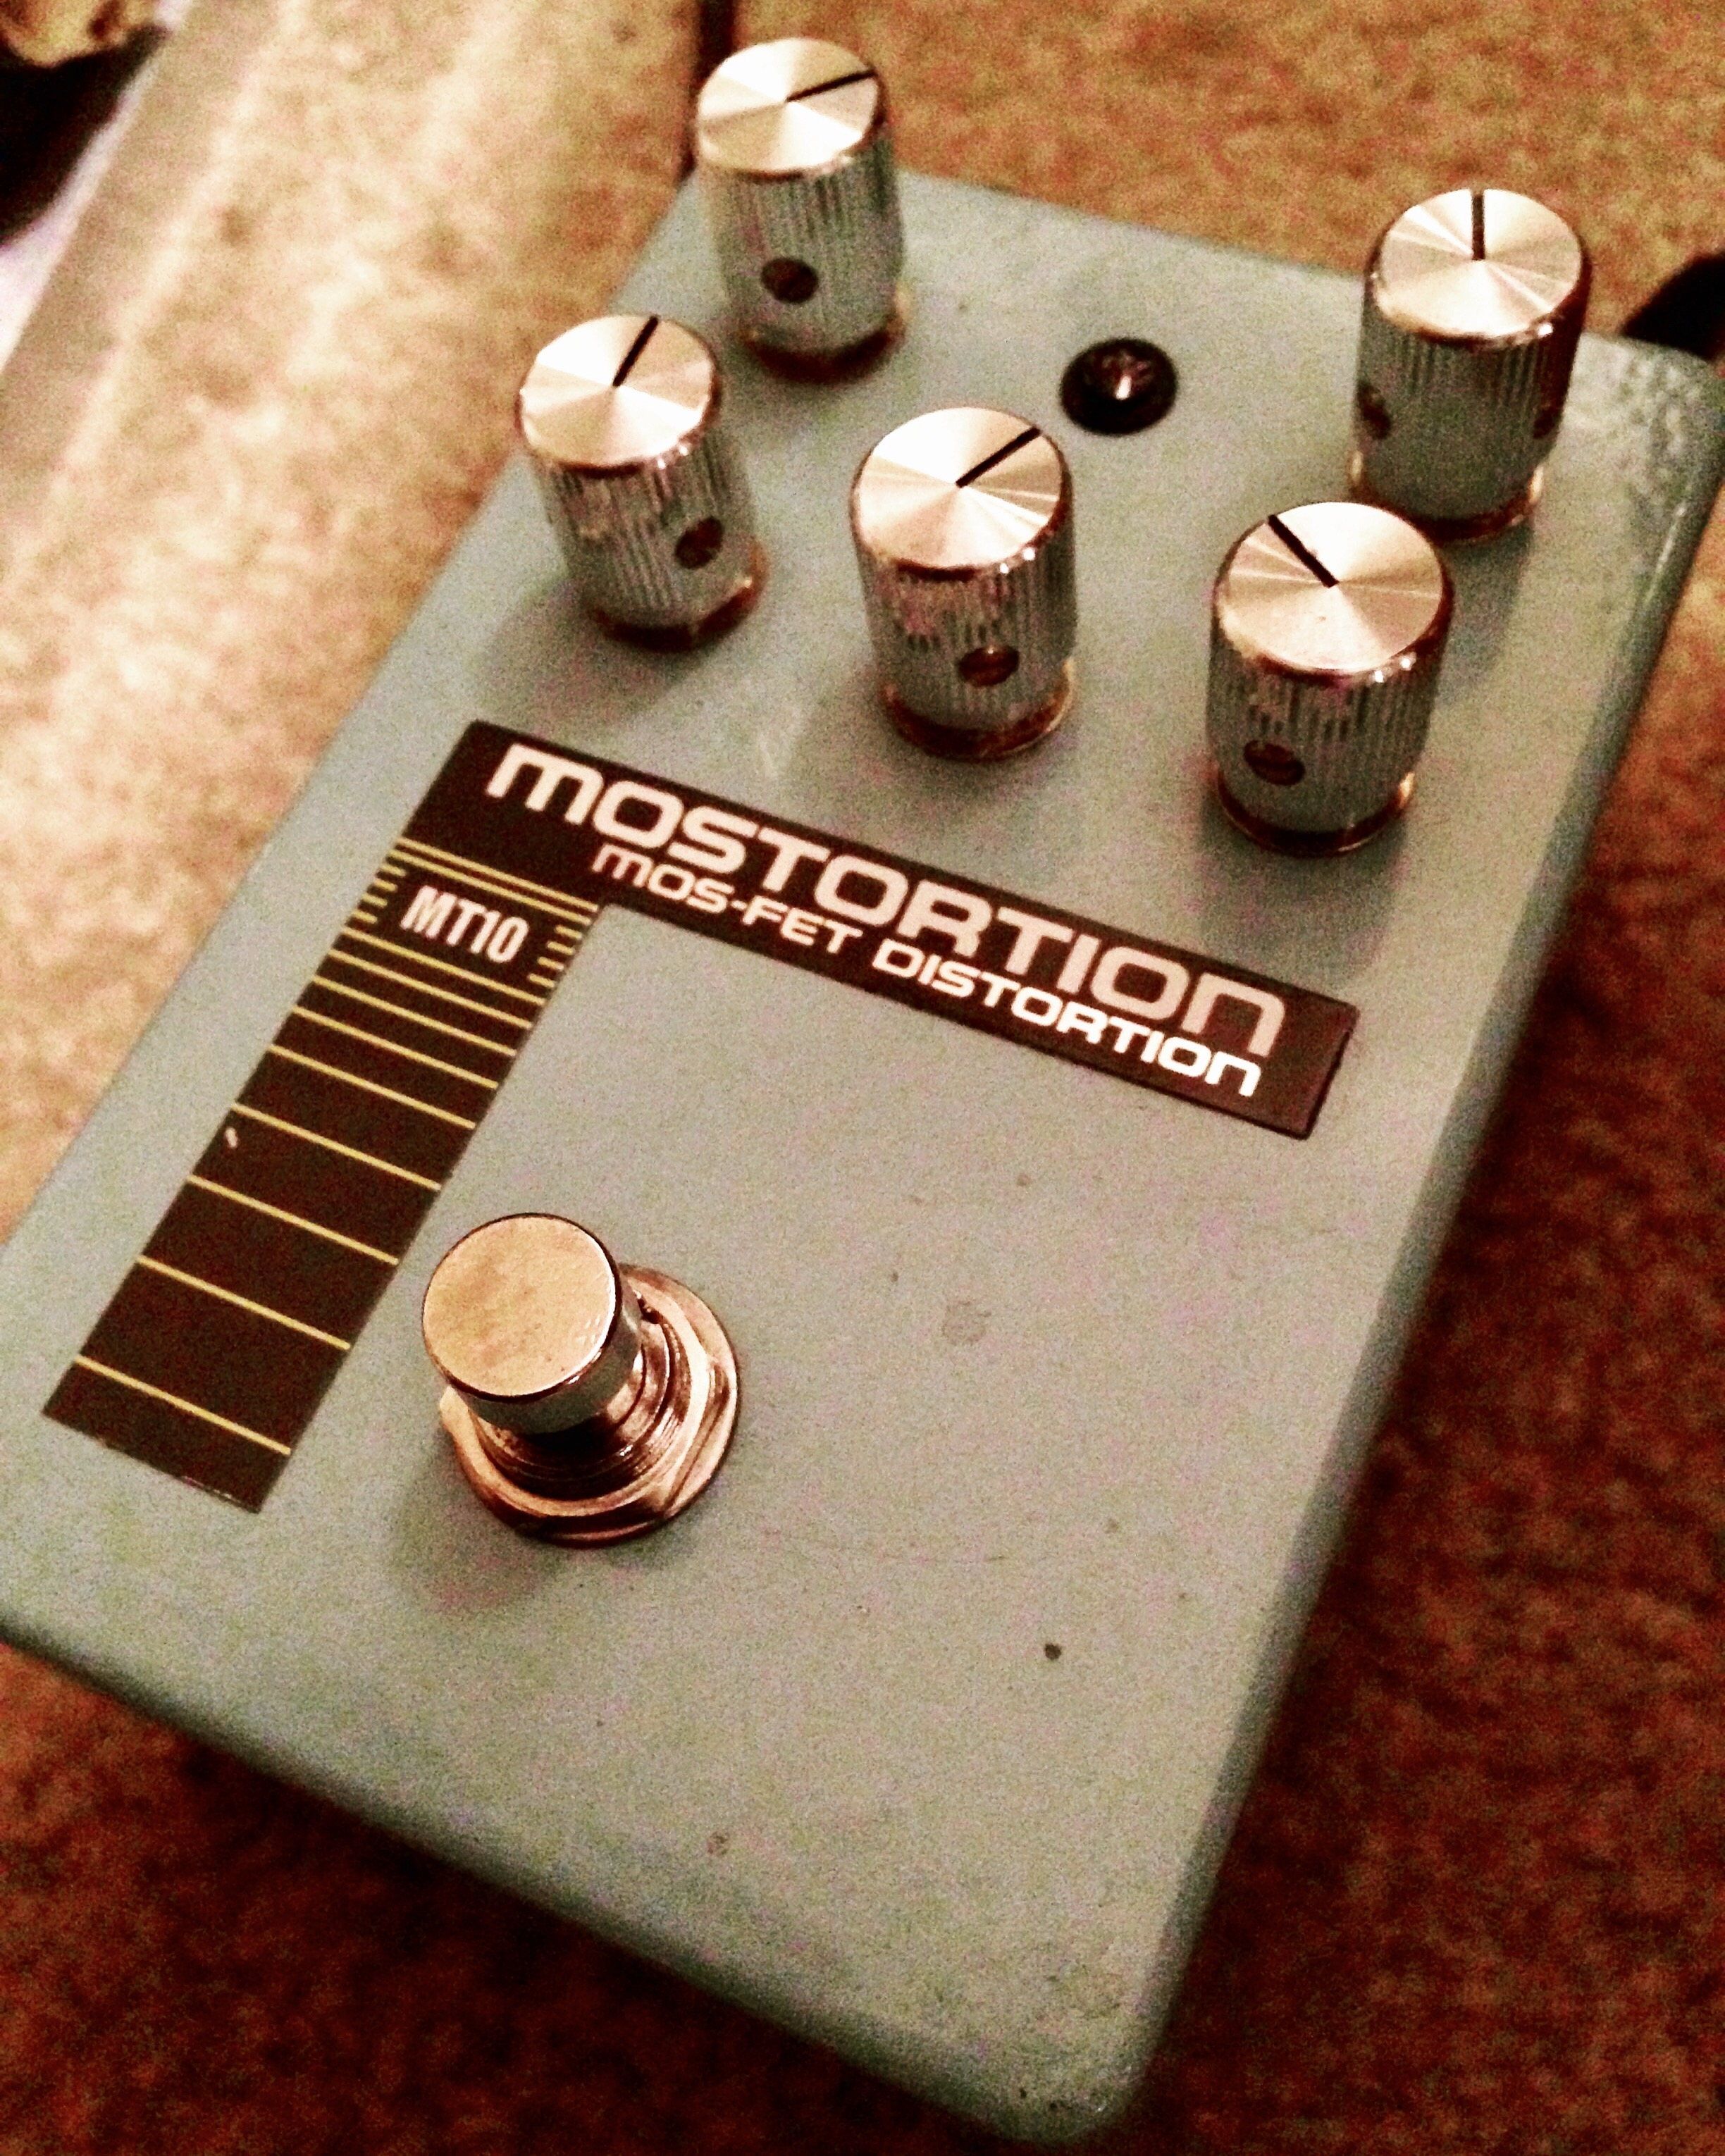 Ibanez MT10 Mostortion rehoused by Thru-Tone in Nashville, which lives on my studio LA Sound Design pedalboard